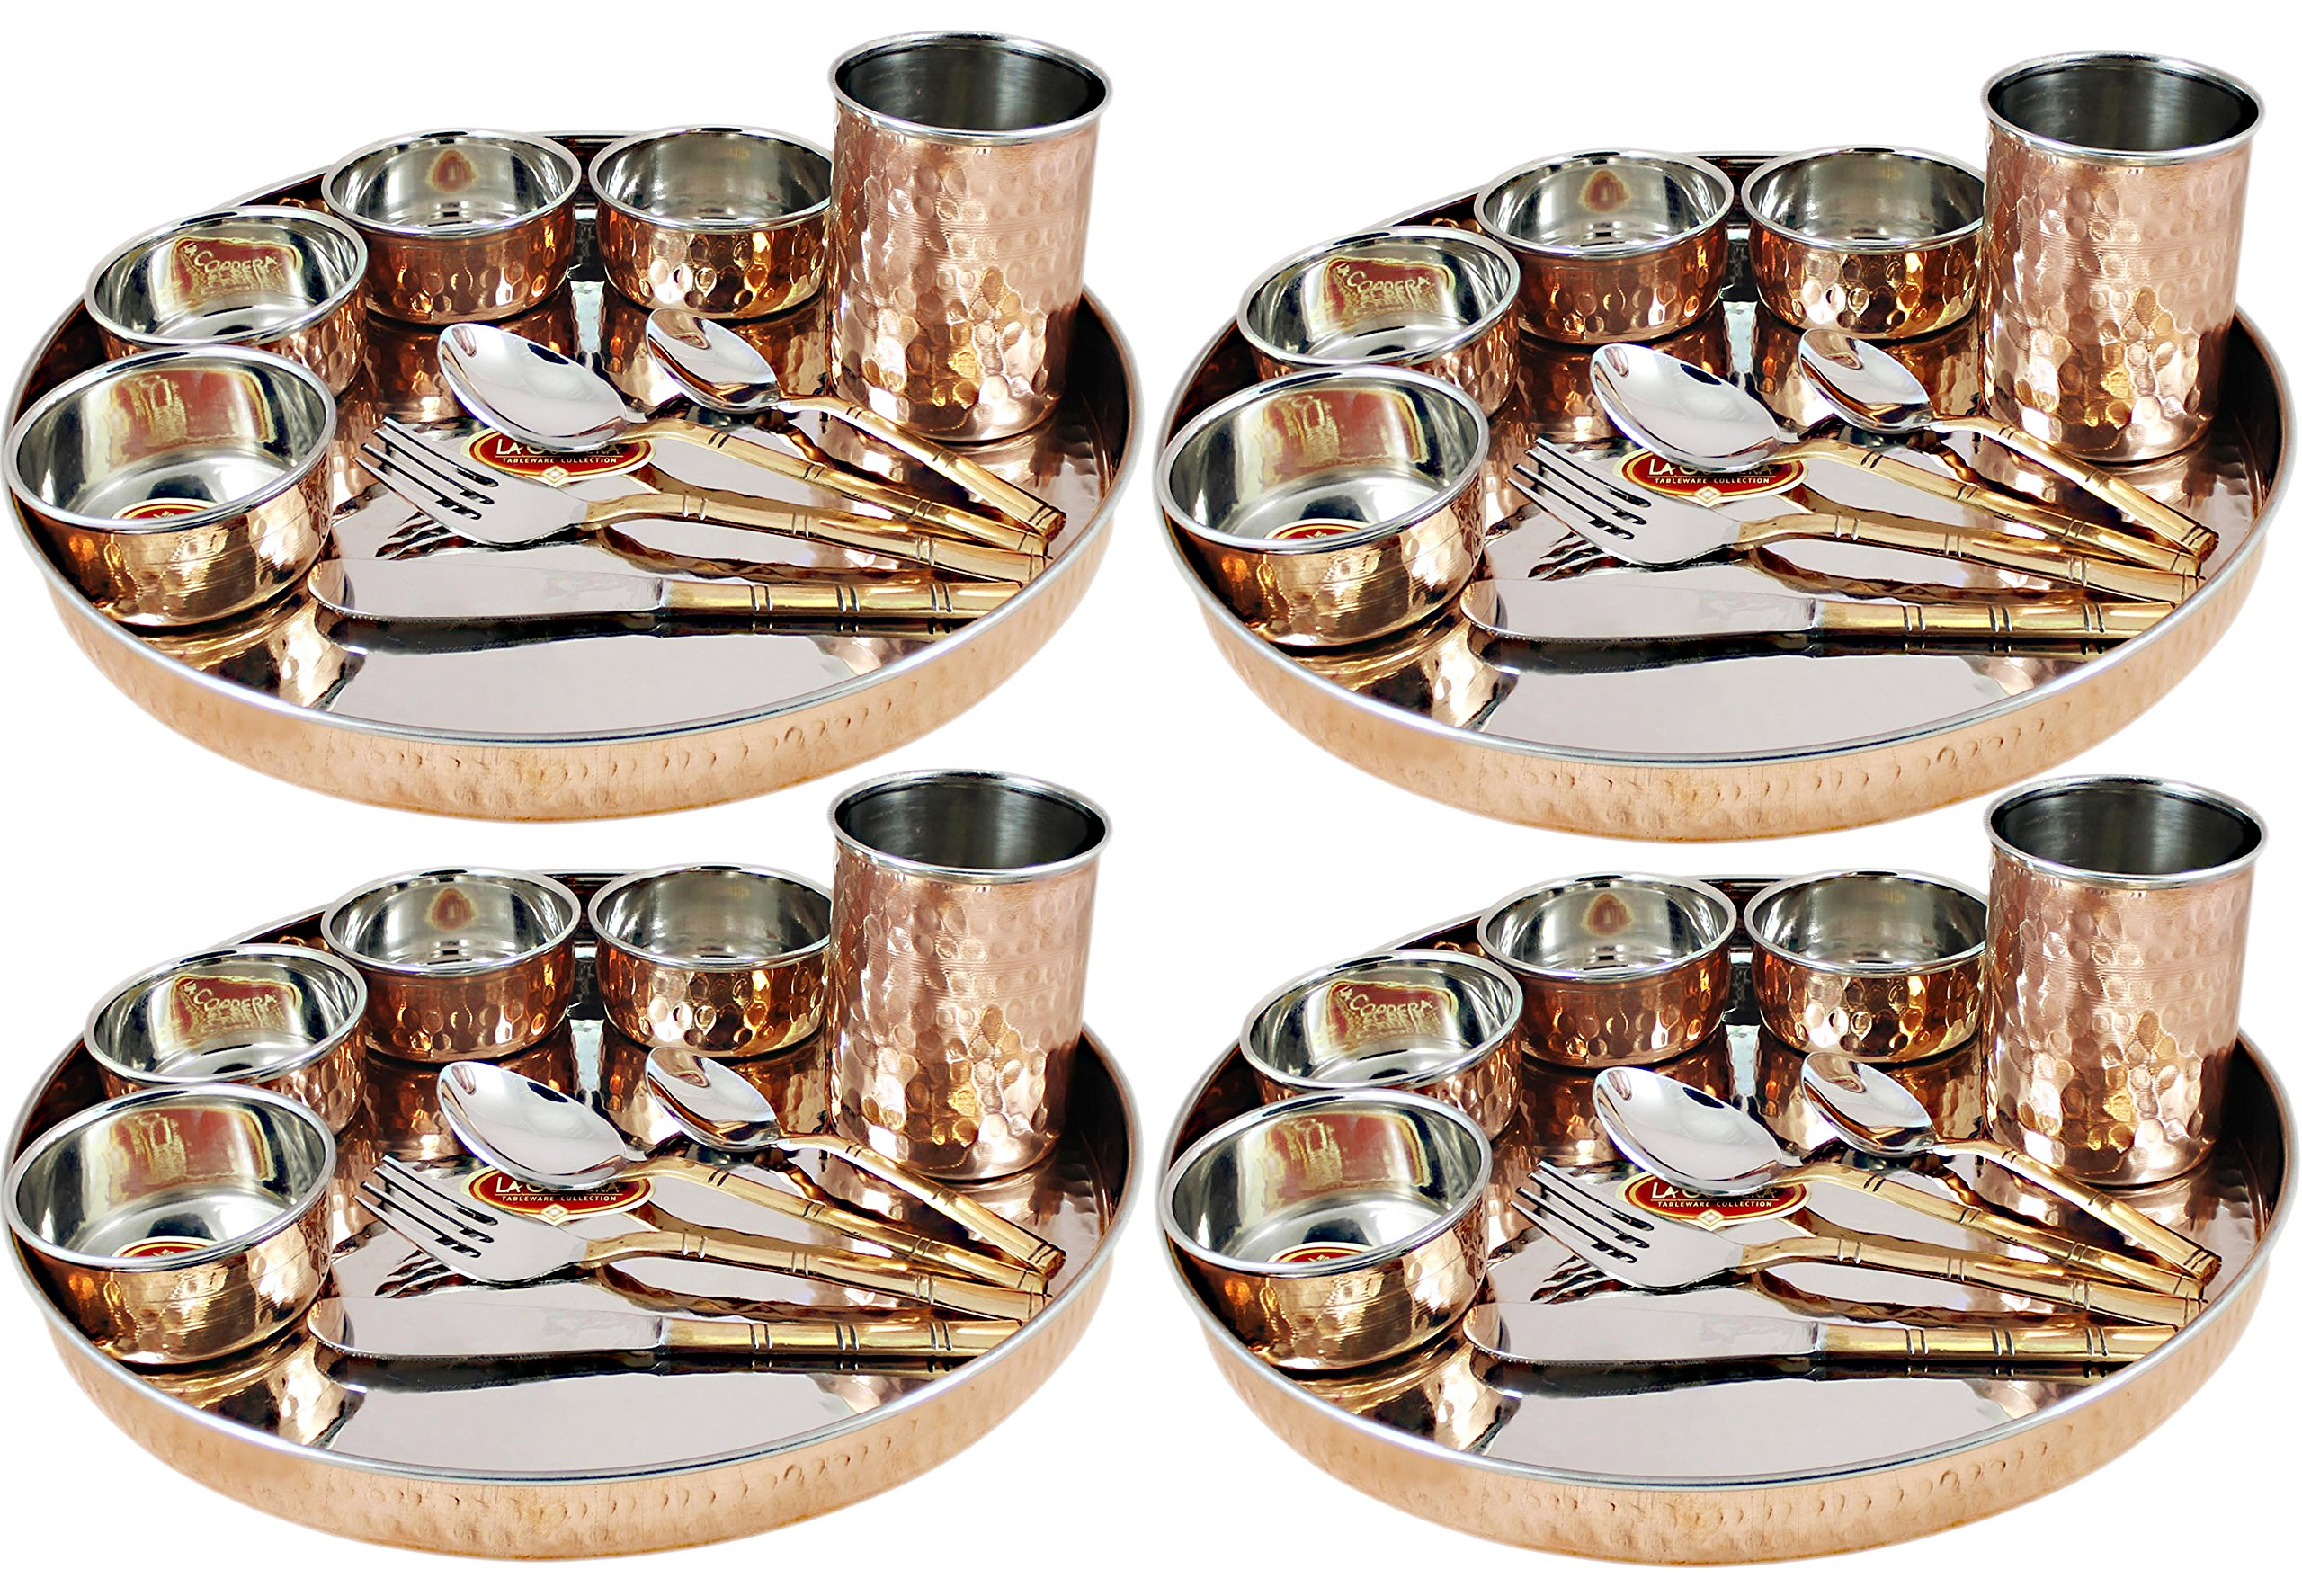 Christmas Decor Gifts Traditional Dinnerware Set, 40 Piece Service for 4, Dinner Plates Bowls Mugs and Cutlery Set Copper Stainless Steel